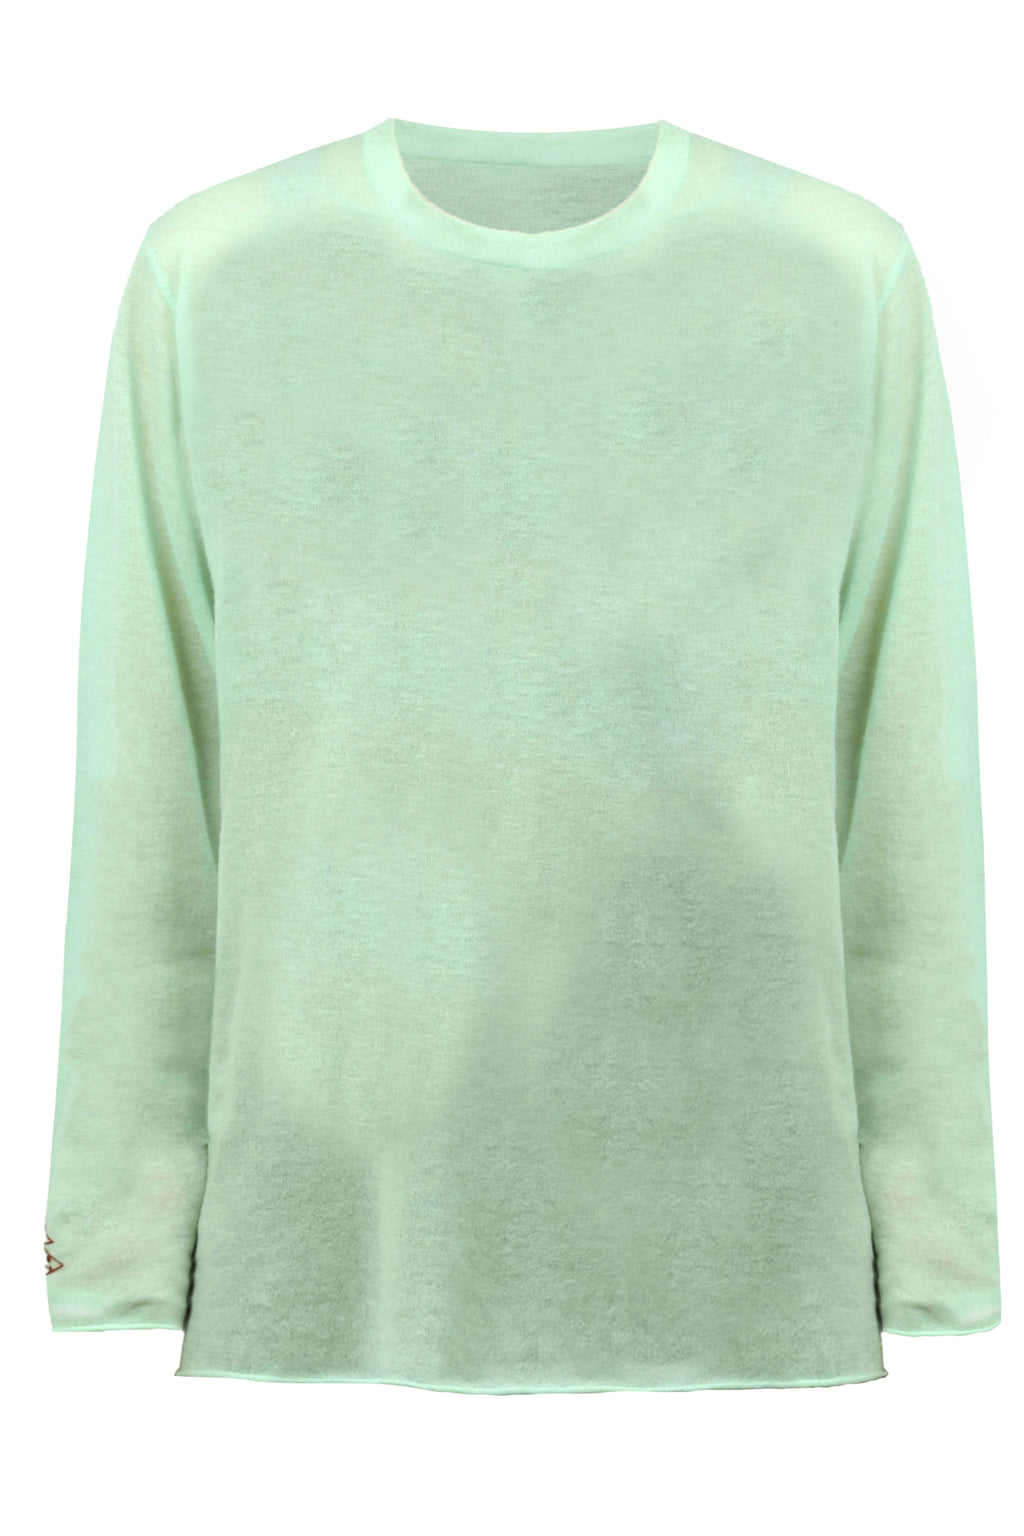 Christmas Cashmere Long Sleeve Sweater